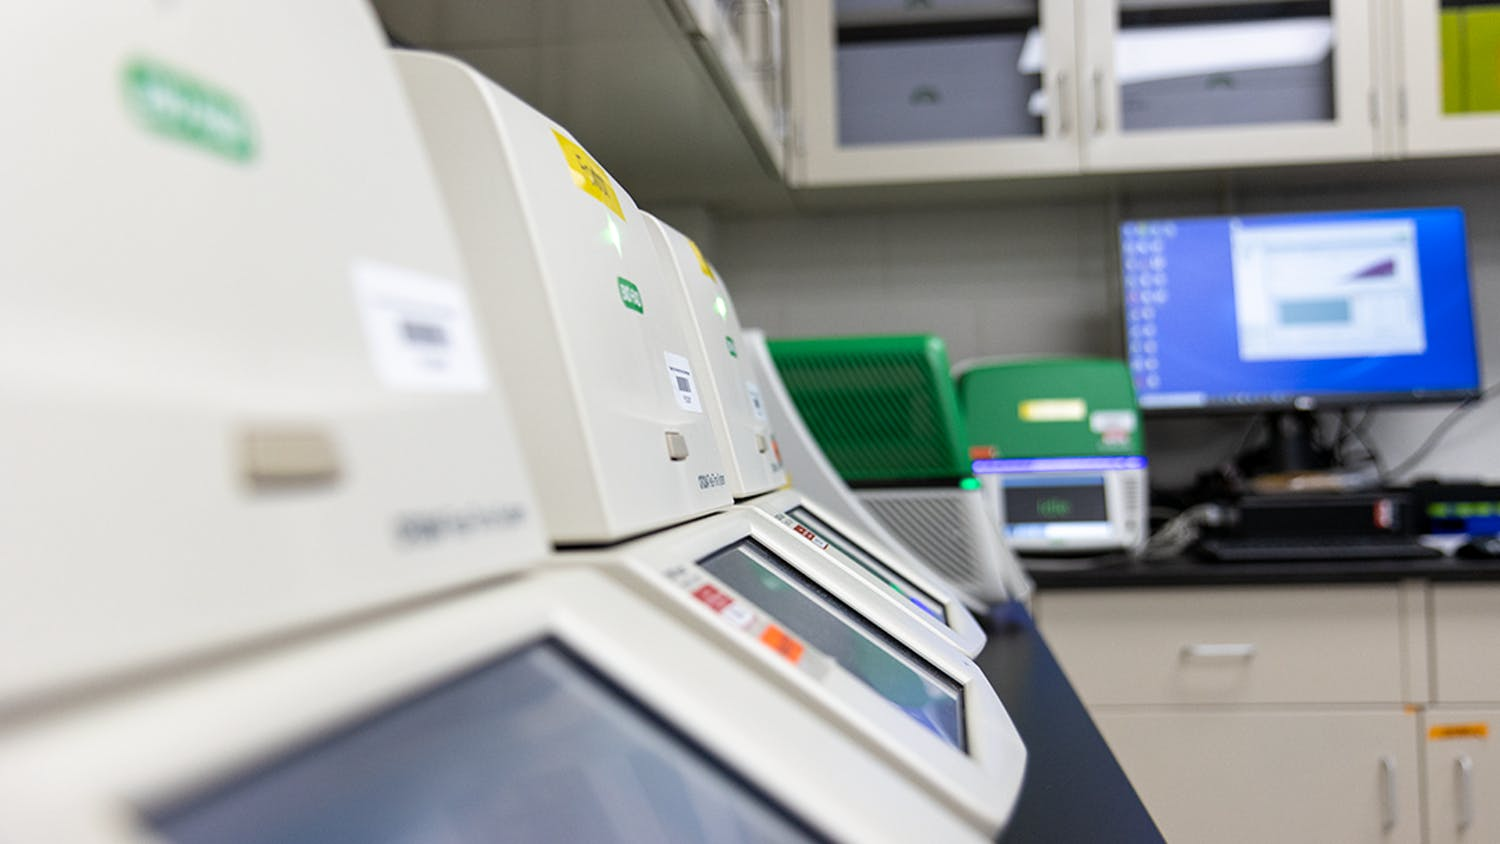 Line of idle Bio-Rad CFX384 PCR detection systems. When in use, these units scan a tray of samples for one hour and 30 minutes before being validated and then uploaded.